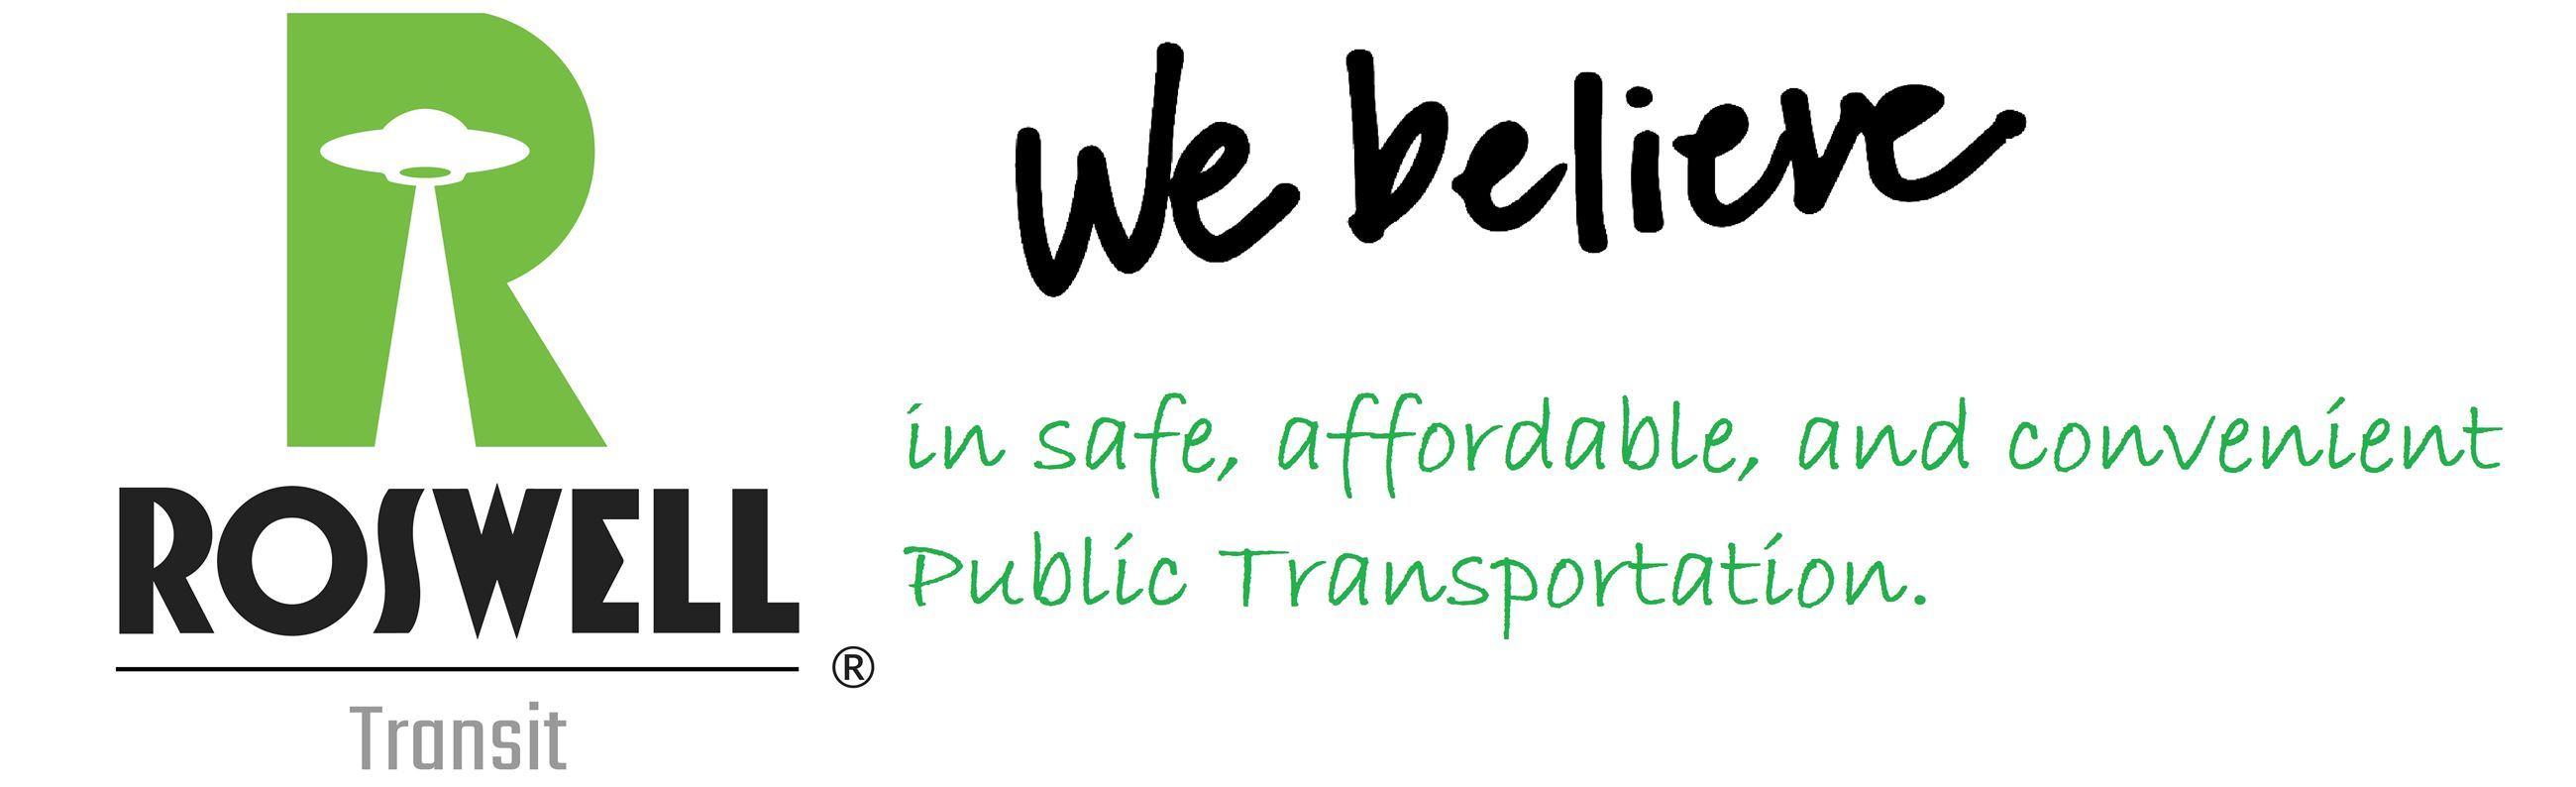 Roswell Transit Logo with slogan